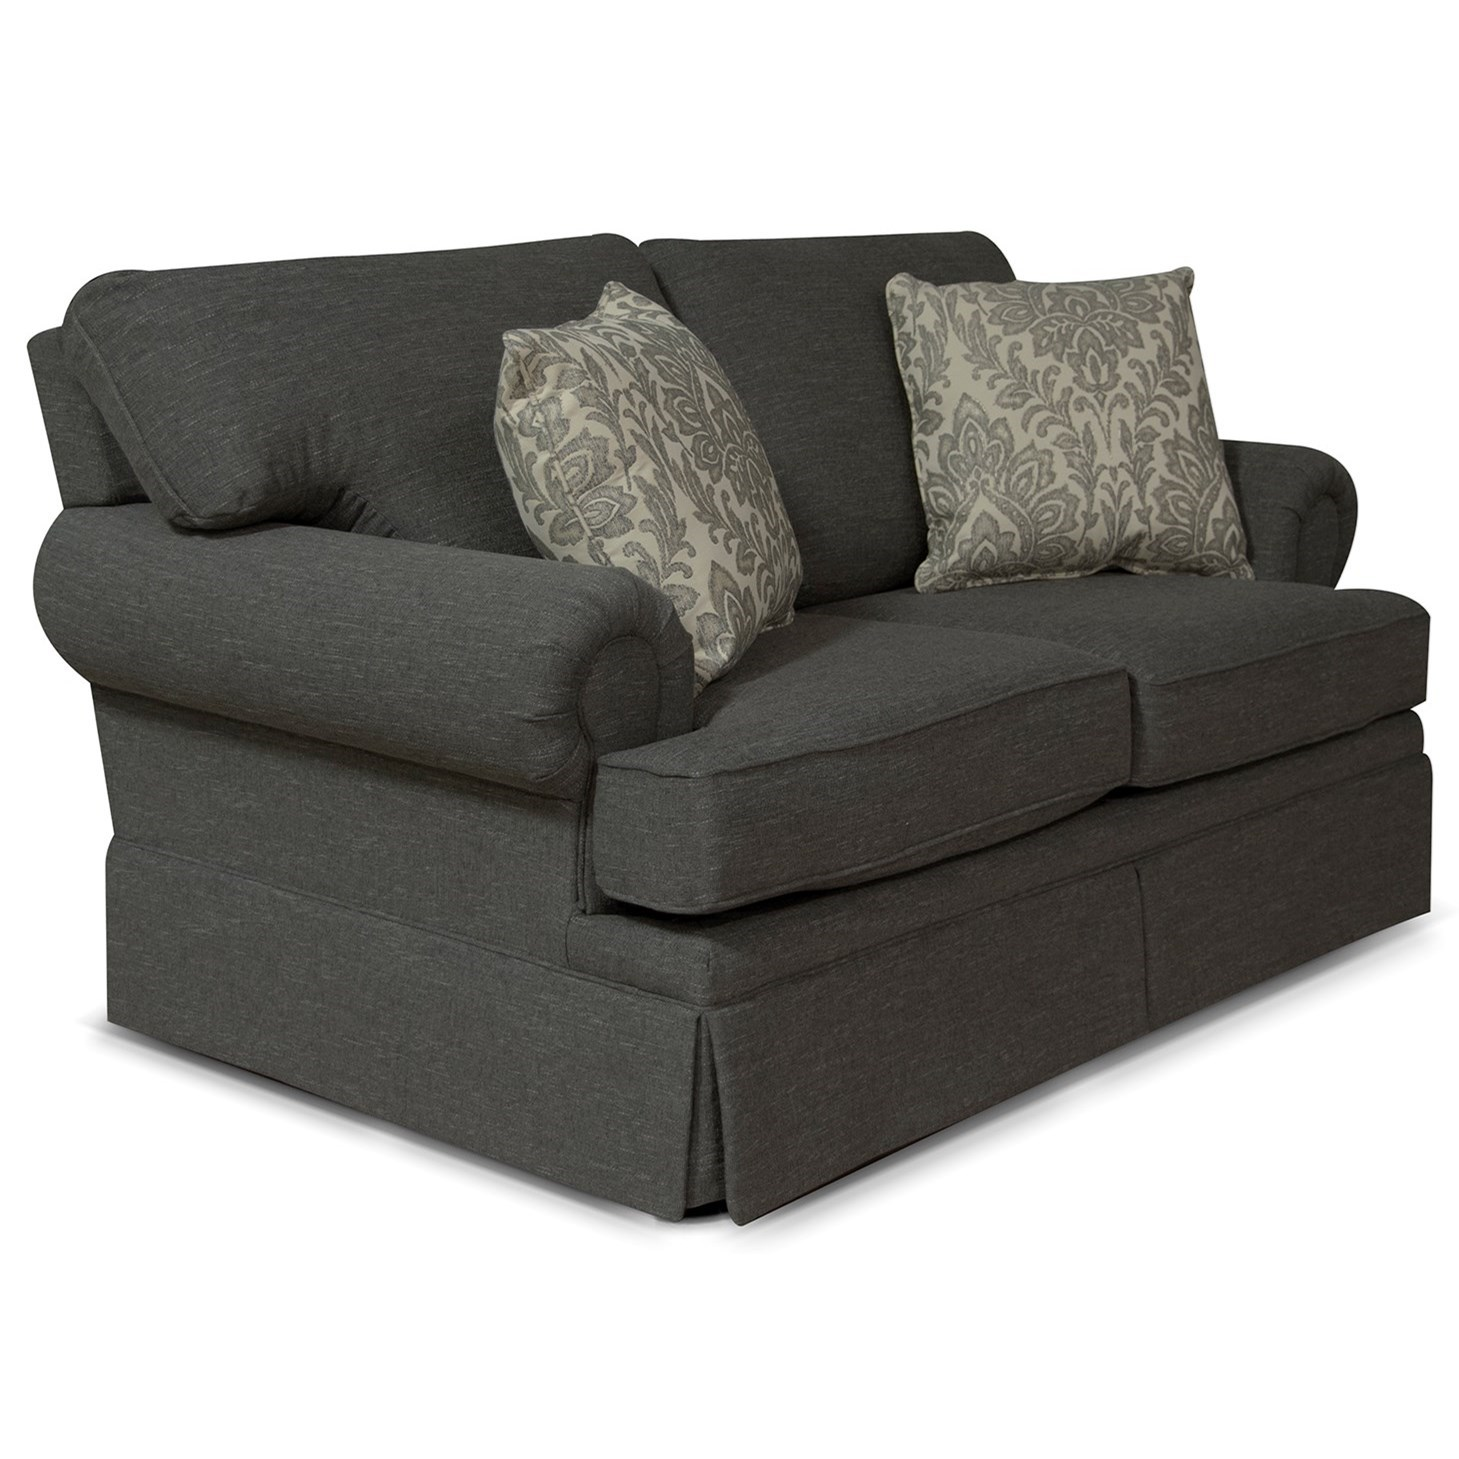 England Cambria Two Over Two Loveseat